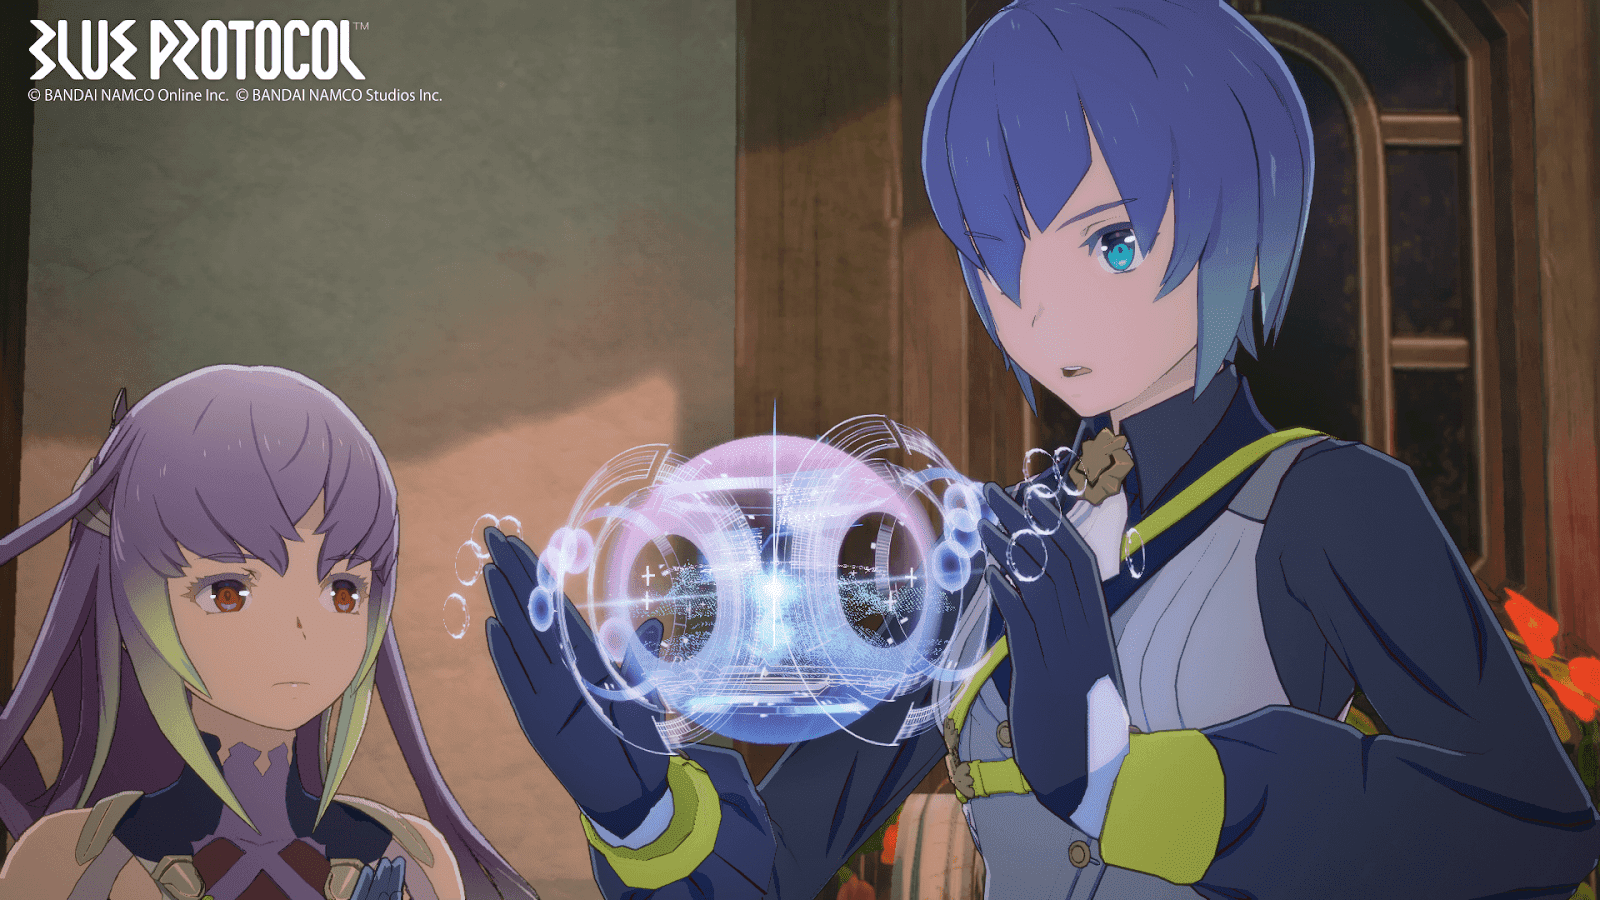 Blue Protocol - Best Anime style MMORPG in 2020?